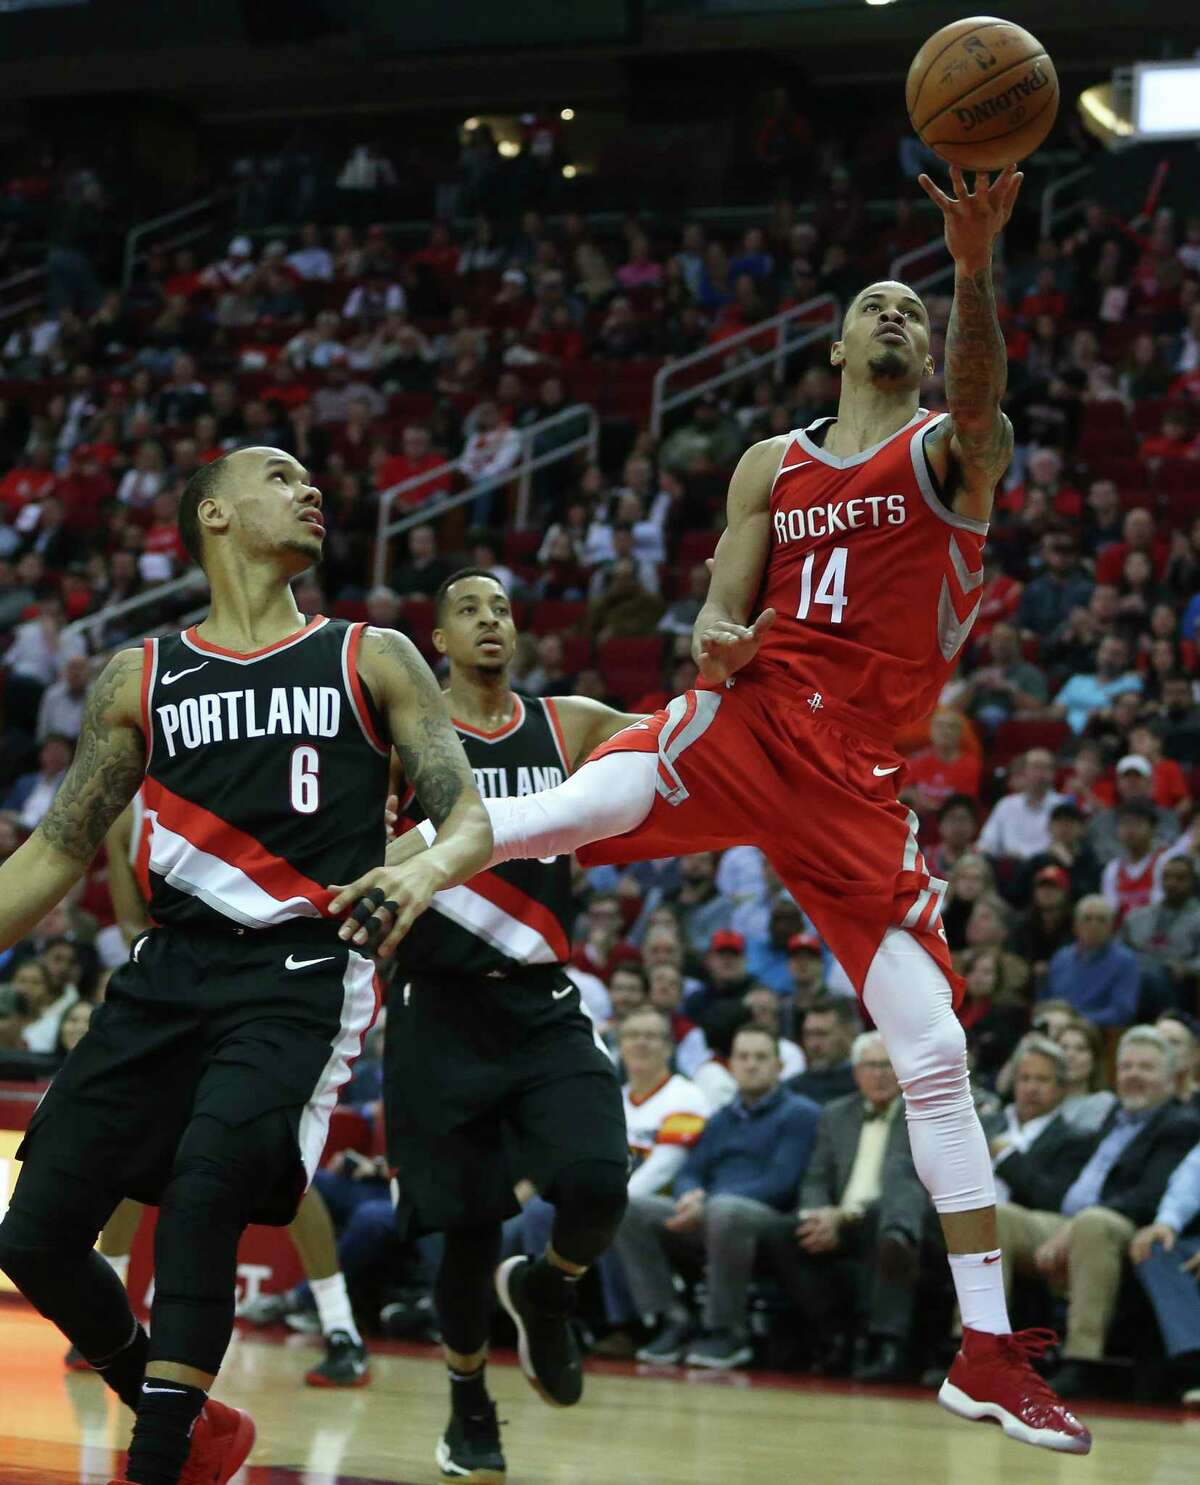 Houston Rockets guard Gerald Green (14) attempts for the basket while Portland Trail Blazers guard Shabazz Napier (6) looks on during the second quarter of the NBA game at Toyota Center on Wednesday, Jan. 10, 2018, in Houston. ( Yi-Chin Lee / Houston Chronicle )